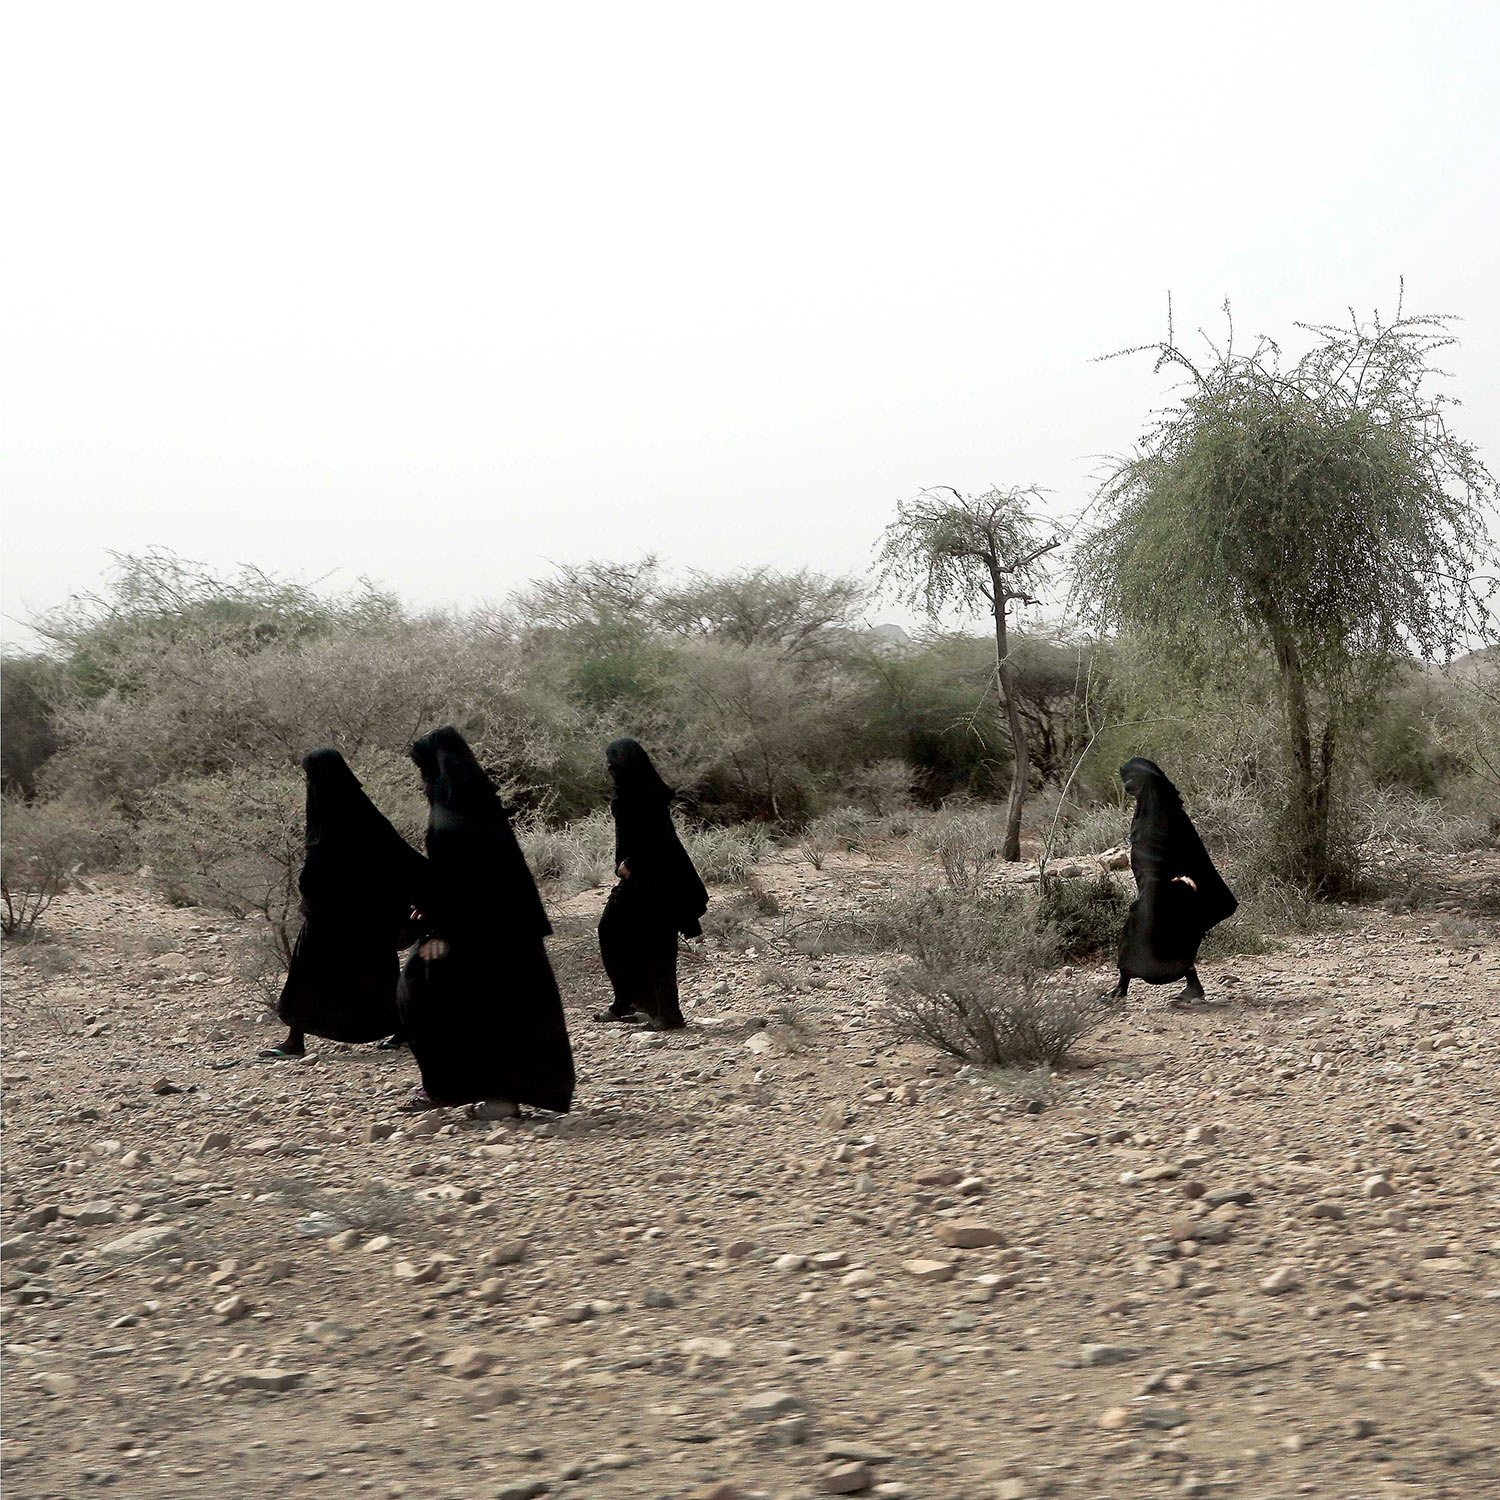 In this July 24, 2018 photo, women make their way on the road in Shabwa, Yemen. (AP Photo/Nariman El-Mofty)